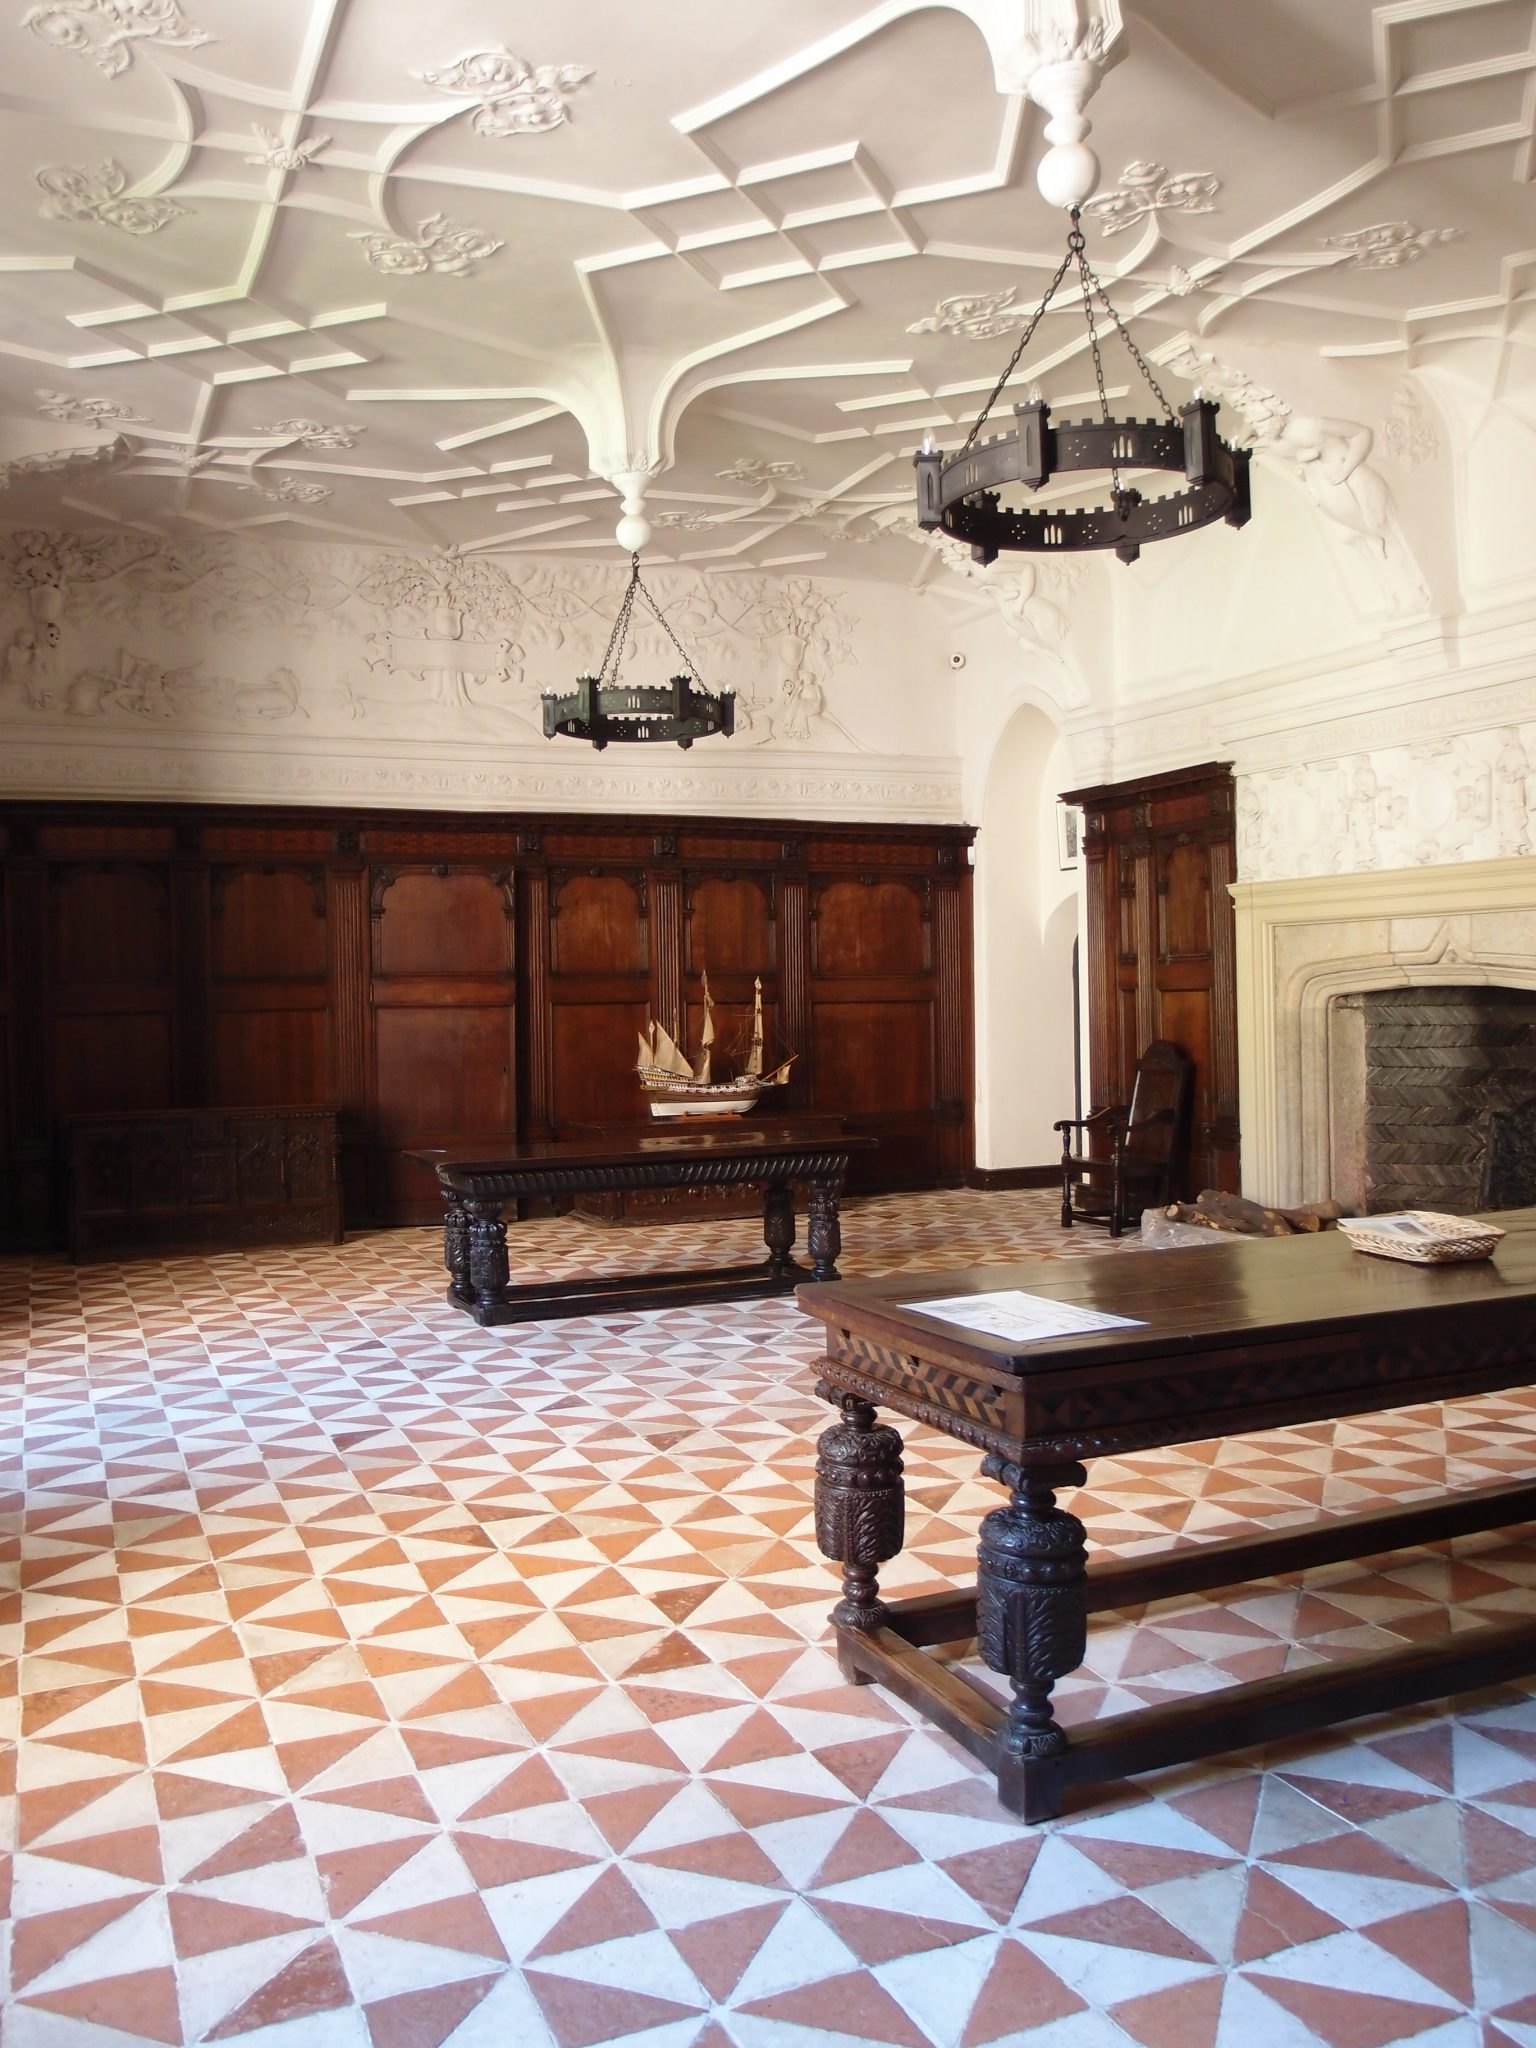 Every square inch of the Great Hall is decorated: from the plaster ceiling, right down to the stone-tiled floor.